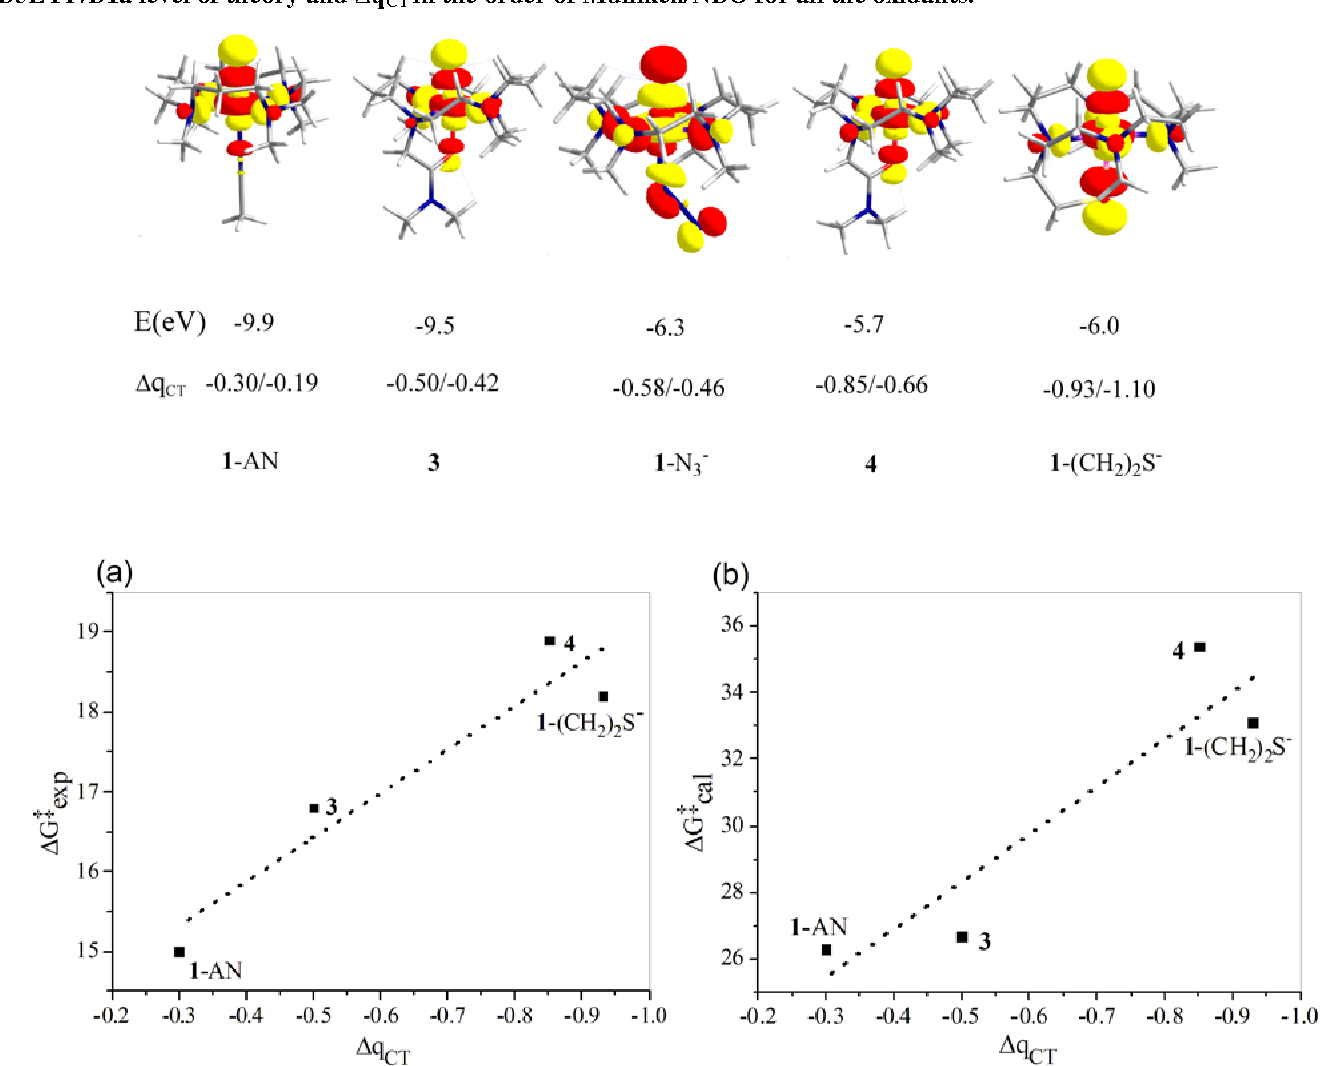 Figure 3. Plots of free energy barriers for O-transfer reactions to S3 vs. the electrophilicity parameter, ∆qCT, of the axial ligand in the iron(IV)-oxo complexes: (a) Experimental ∆Gexp ‡ data. (b) Computed ∆G‡cal(B2//B1a) at 273K for S = 2.